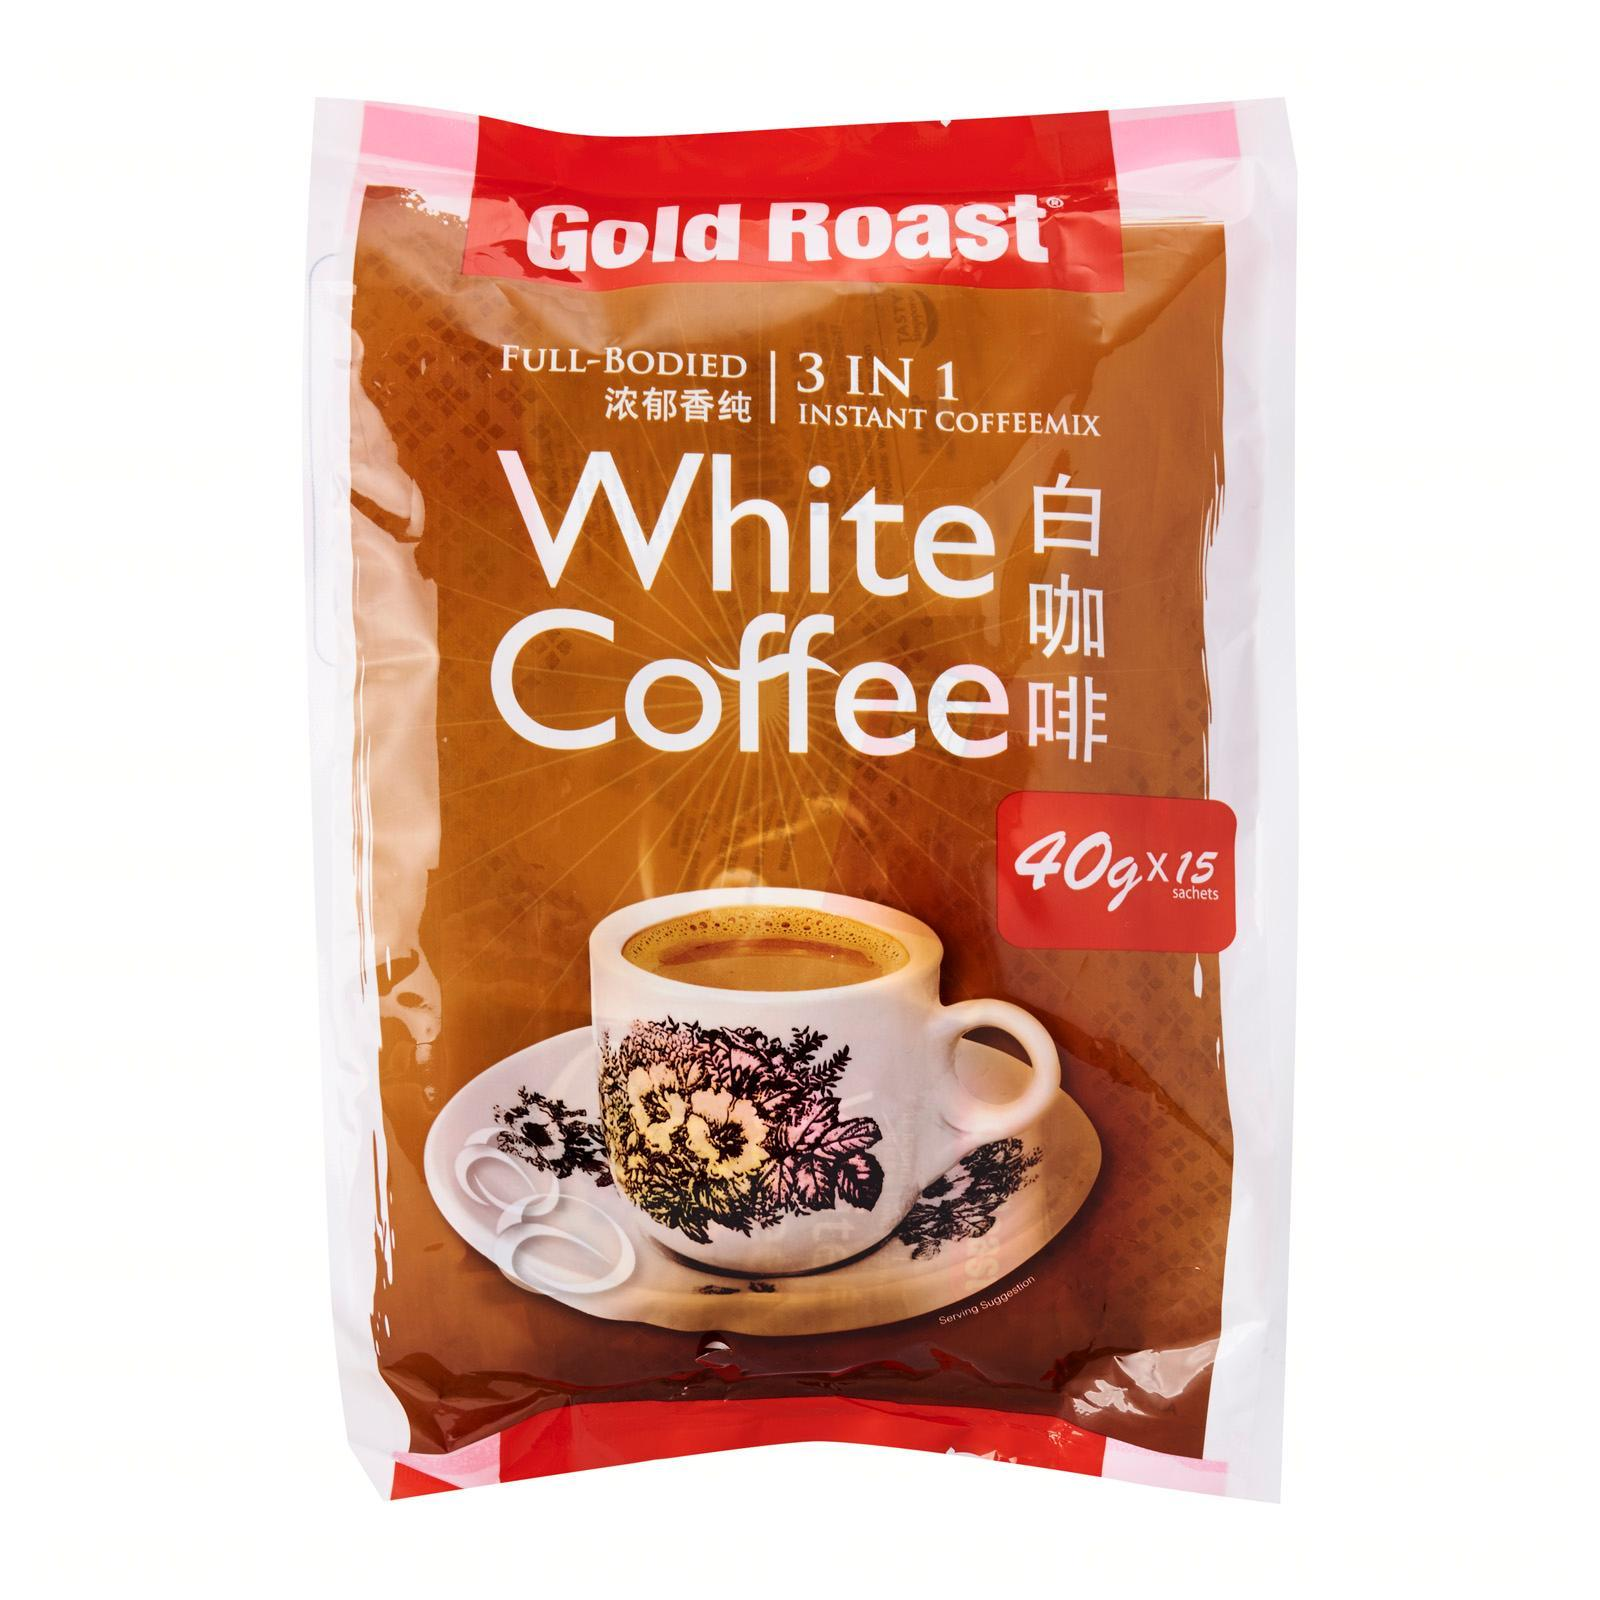 Gold Roast White Coffee 3 In 1